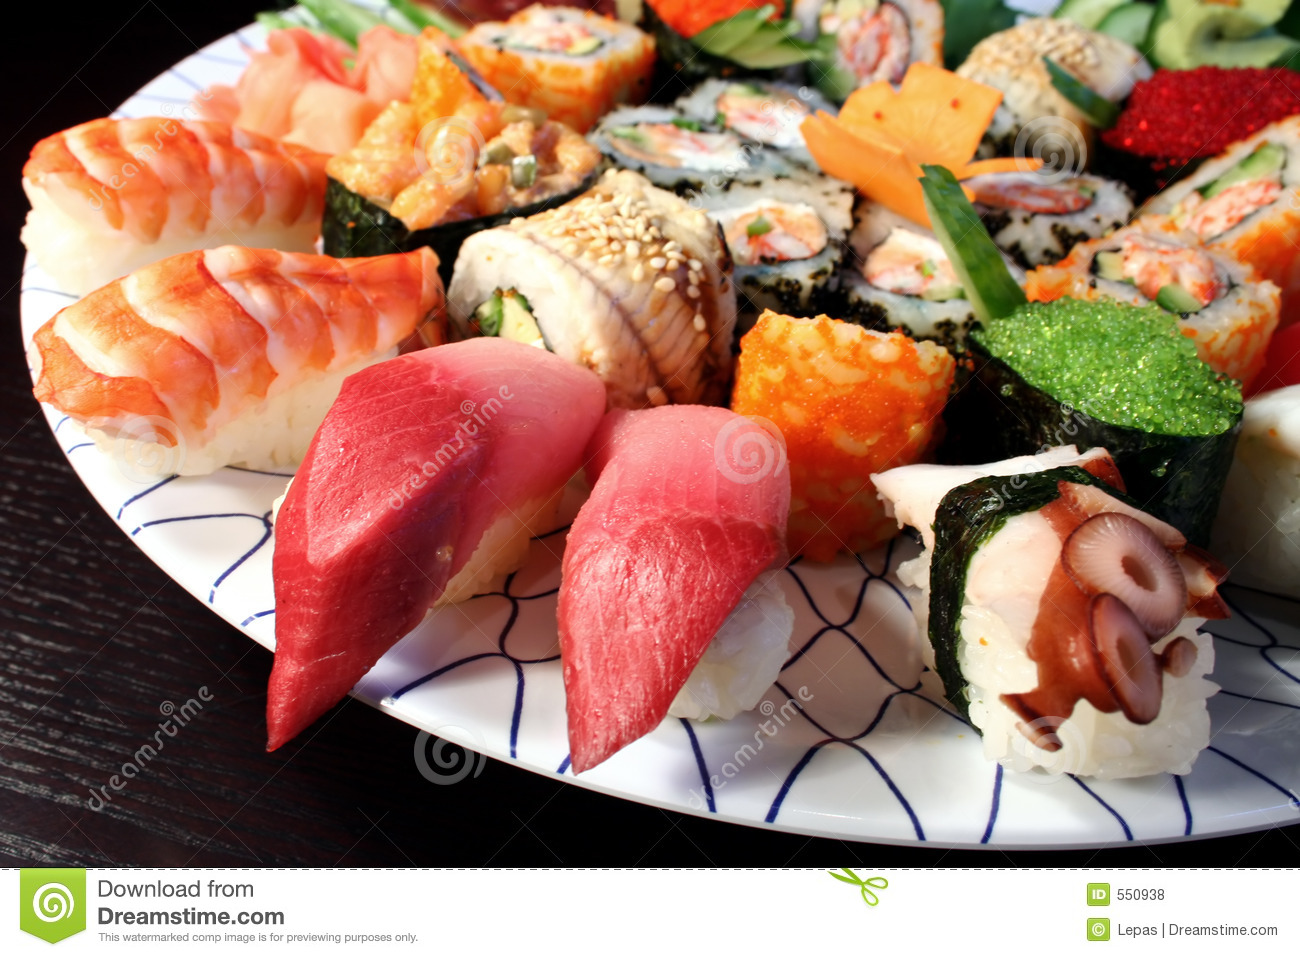 Japanese food royalty free stock photos image 550938 for Apprendre cuisine japonaise